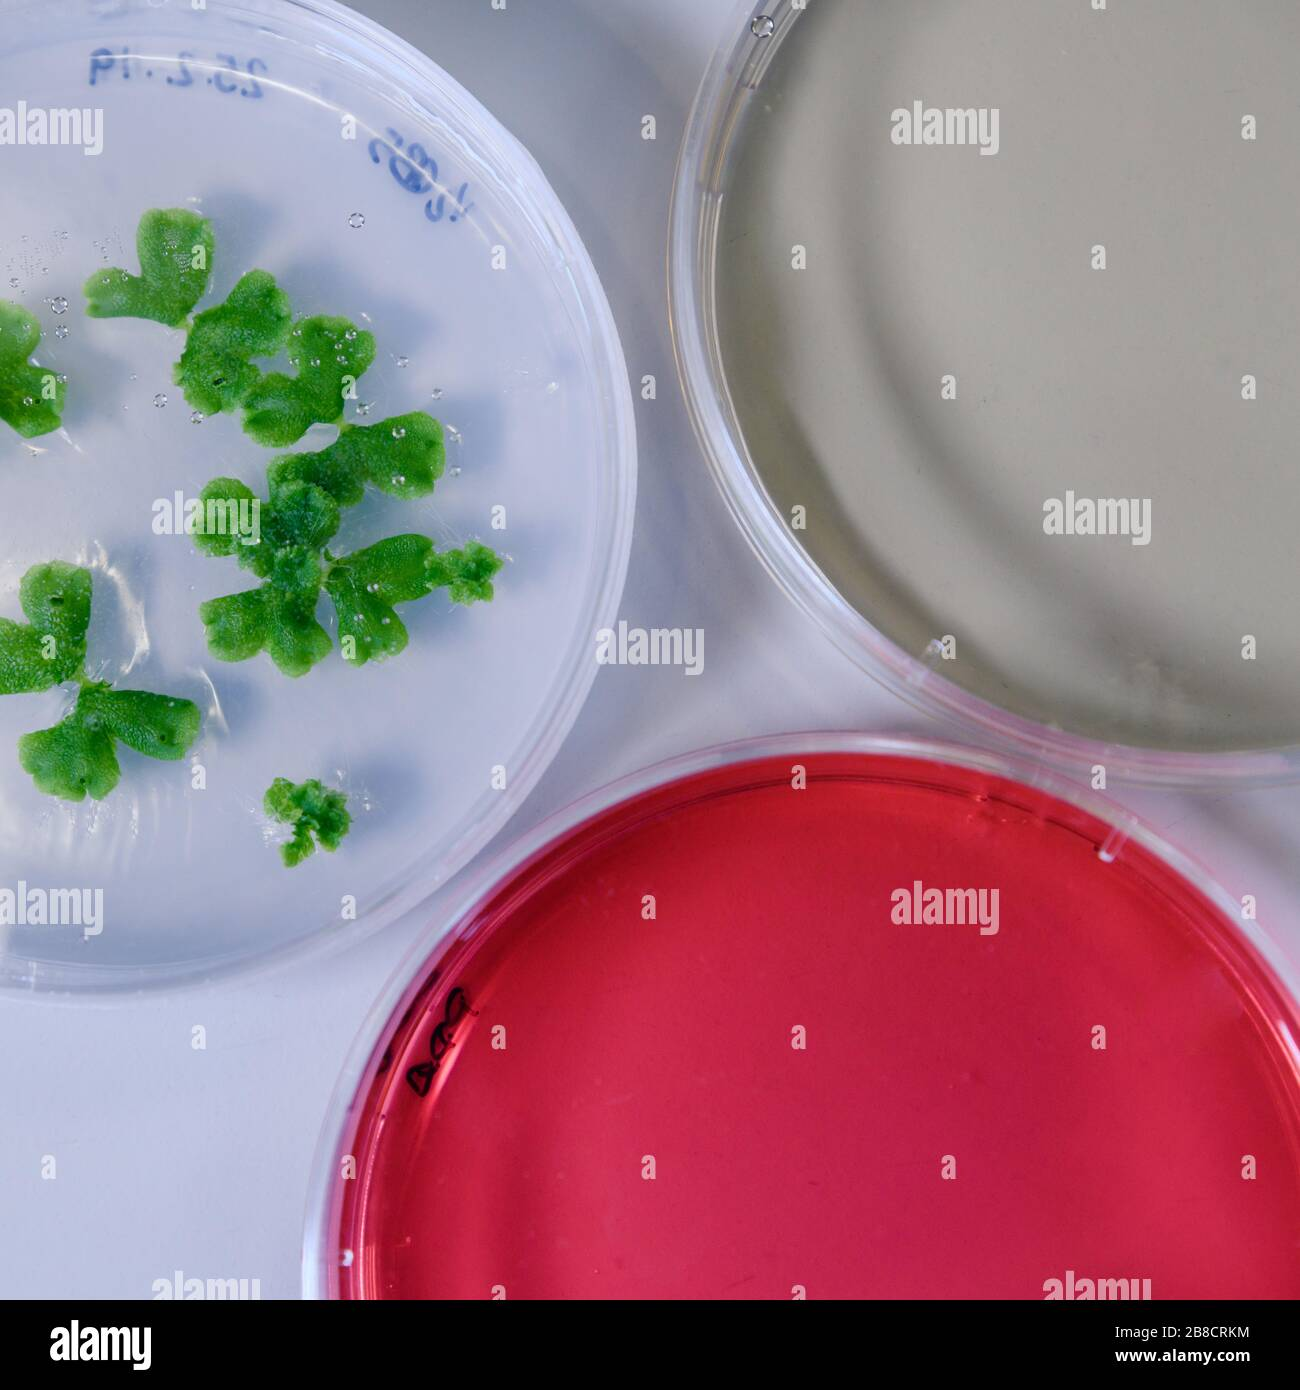 Culture in a petri dish for pharmaceutical bioscience research. Concept of science, laboratory and study of diseases. Coronavirus (COVID-19) treatment Stock Photo